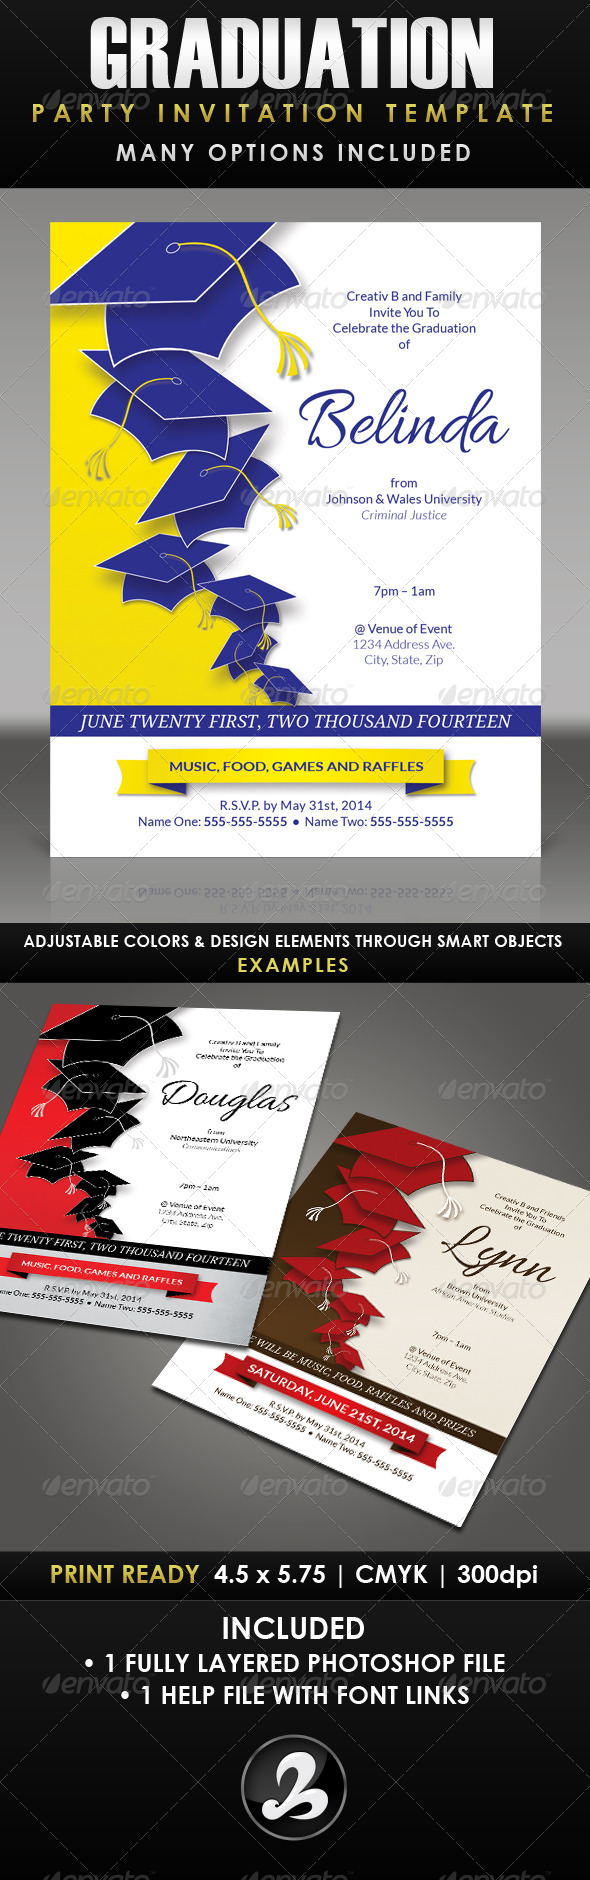 Graduation Party Invitation Template 1